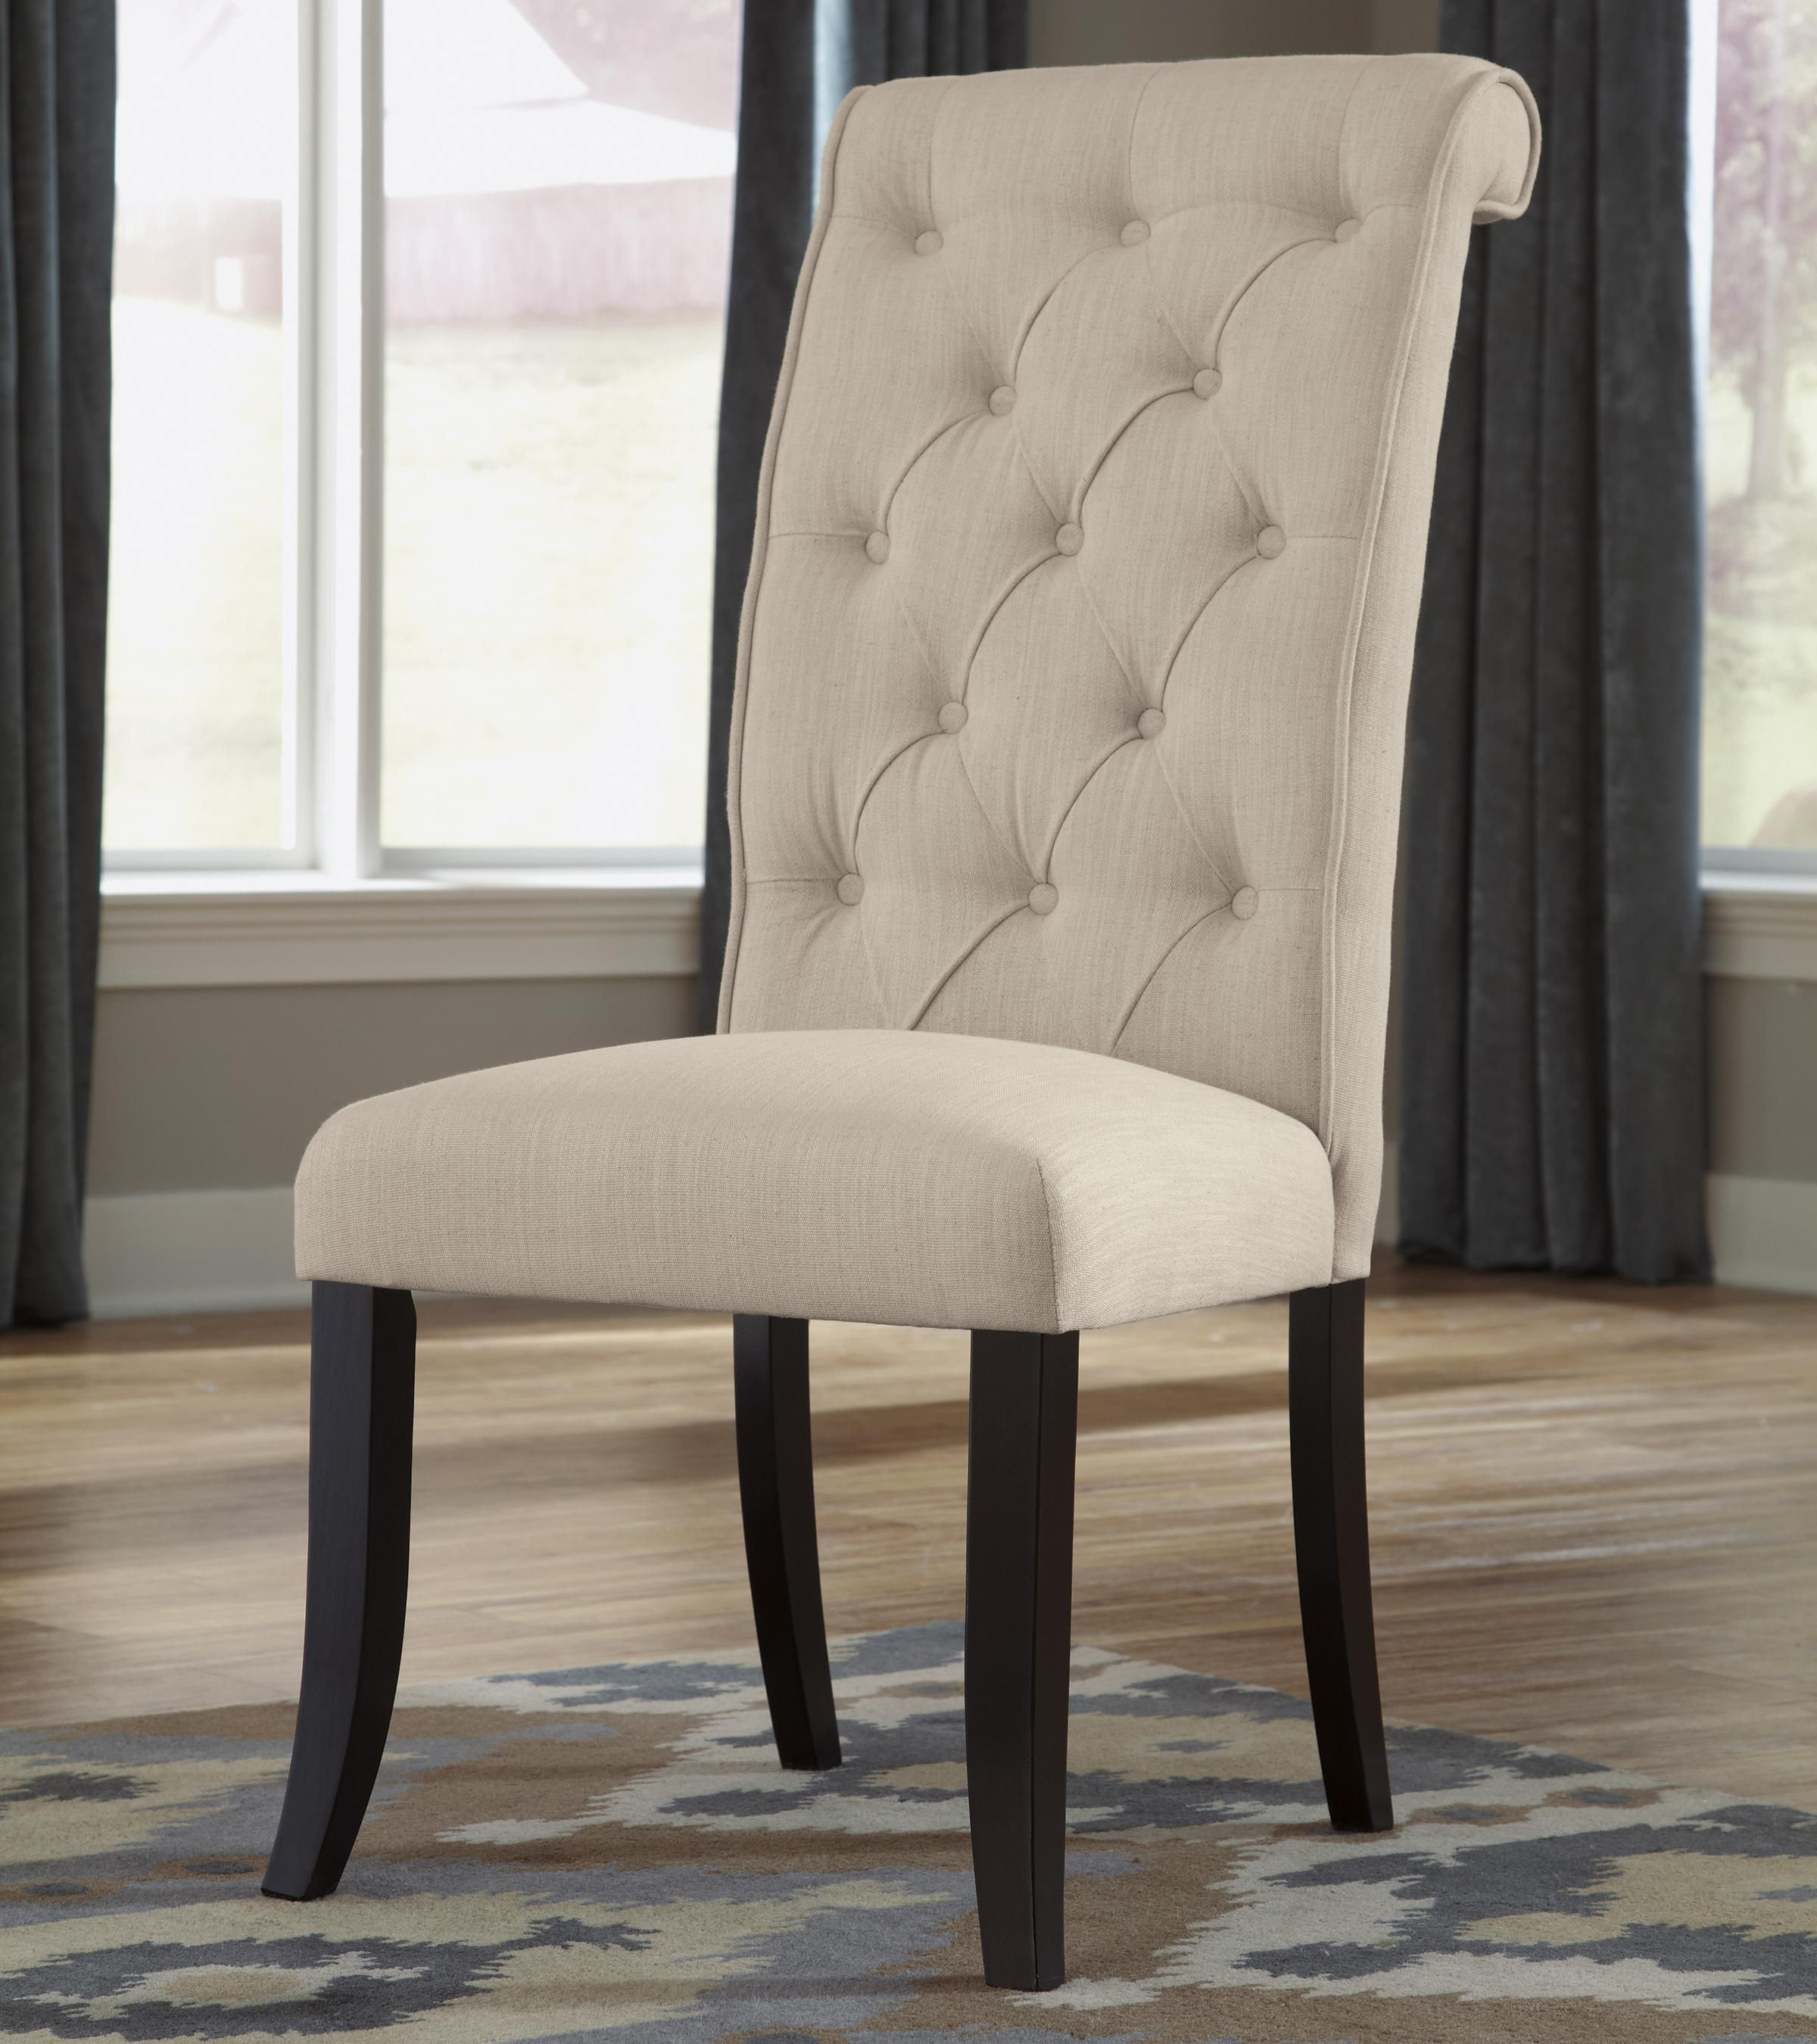 Tripton Dining Upholstered Side Chair With Button Tufting And Roll Back Design By Signature Design By Ashley At Godby Home Furnishings Dining Upholstery Linen Dining Chairs Side Chairs Dining